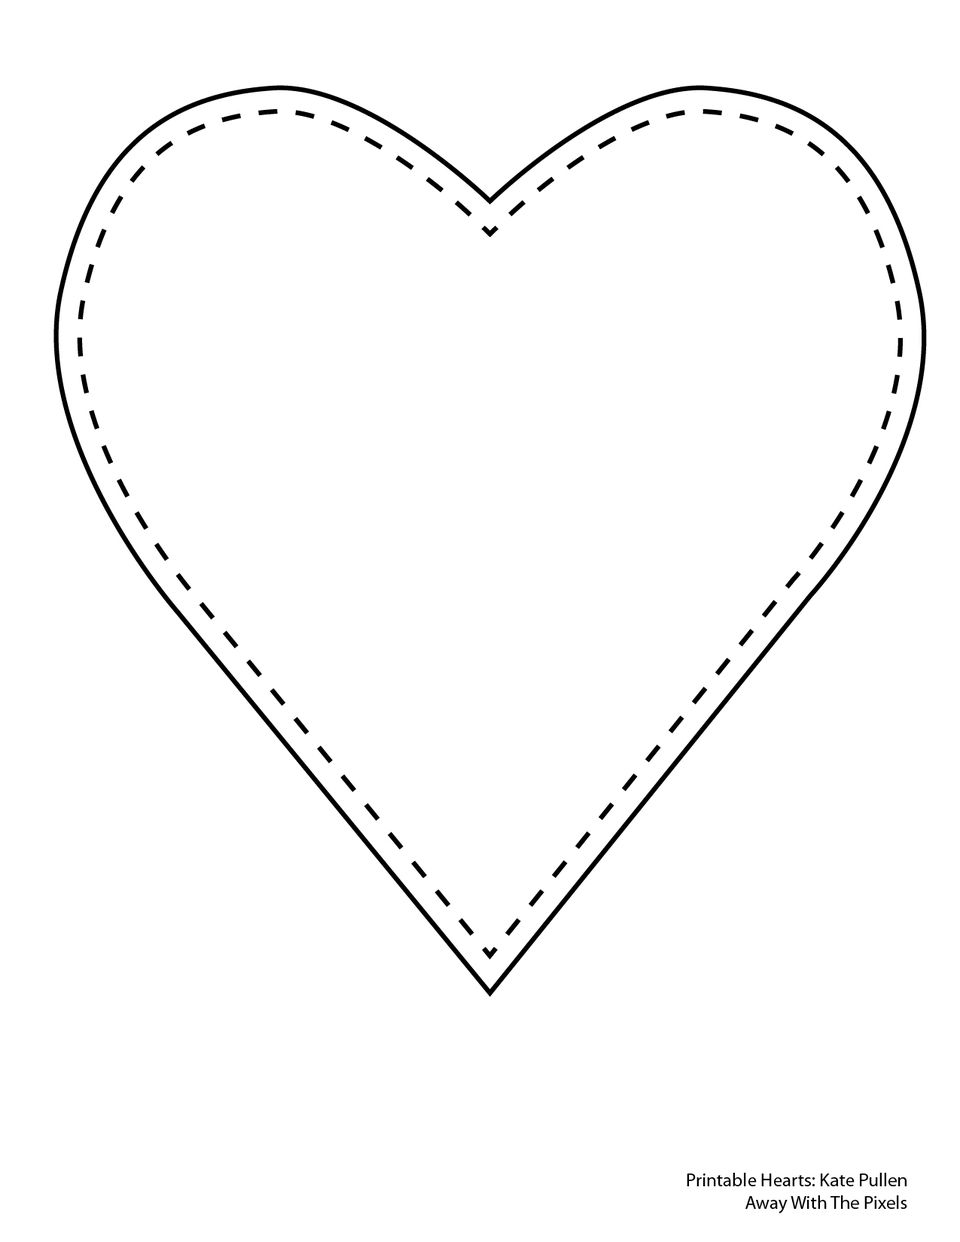 Free Printable Heart Templates 2905714 on swirly number 4